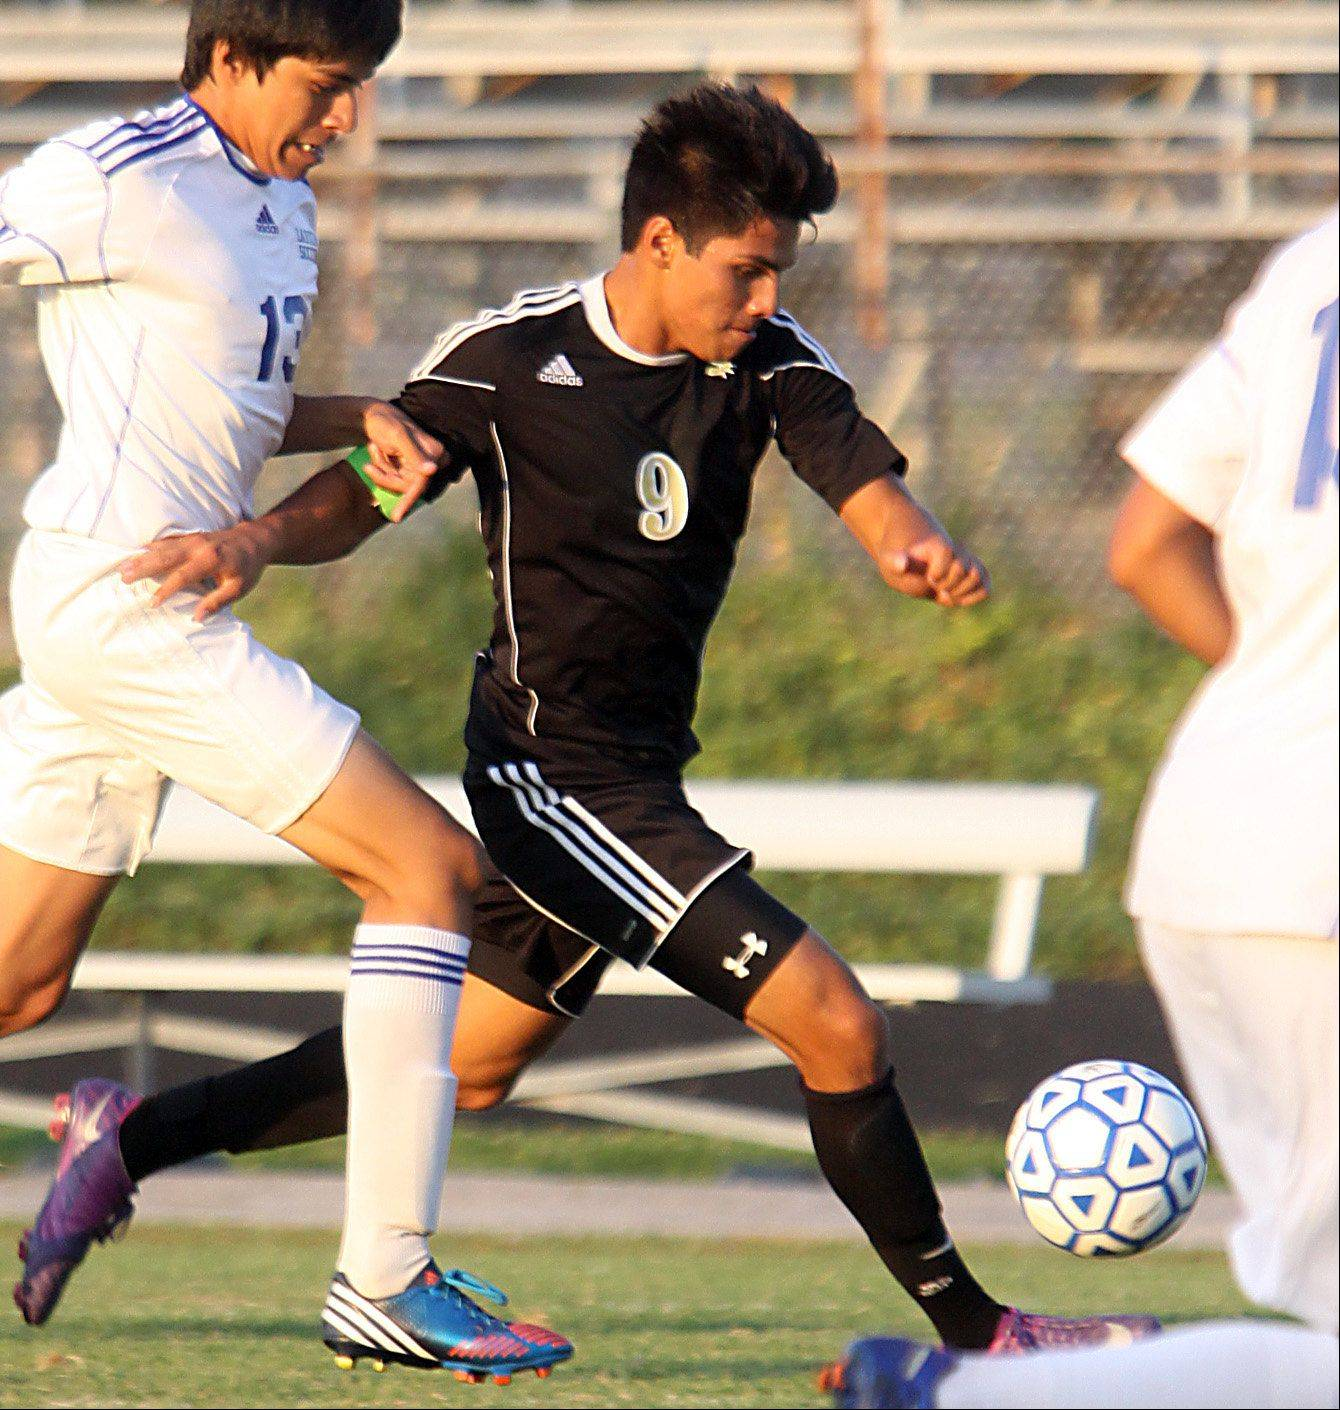 Larkin's Hector Mendoza, left, tries to catch Streamwood's Mario Rodriguez, center, during a varsity soccer game at Memorial Field in Elgin on Thursday night.